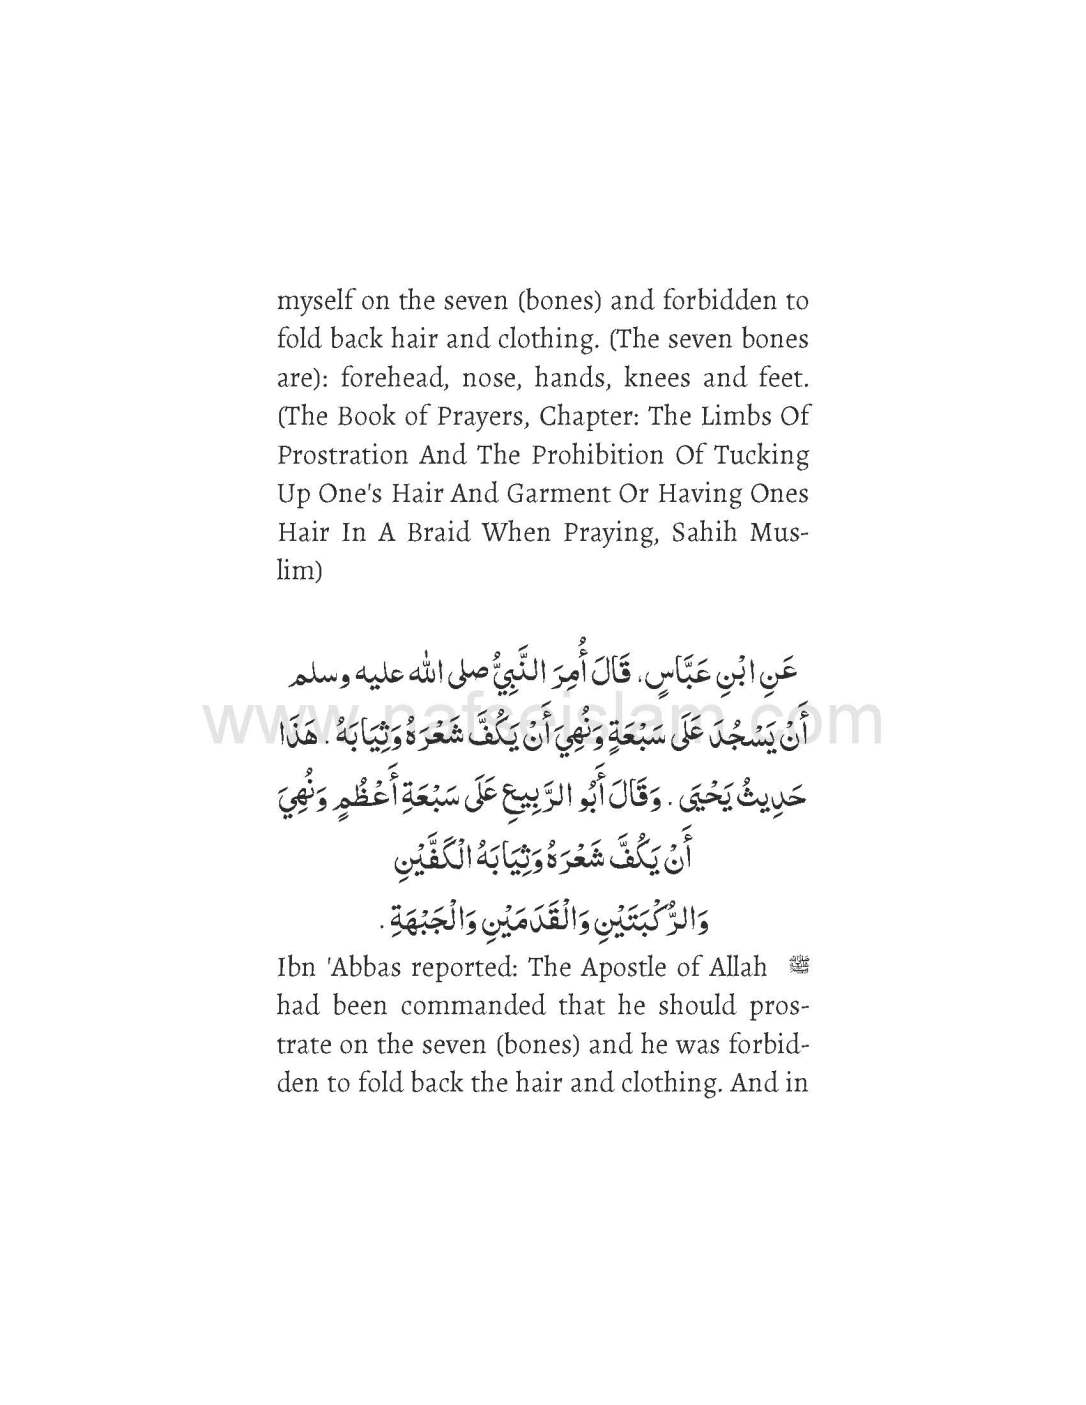 Islamic Ruling On Folding Pants In Salah_Page_10